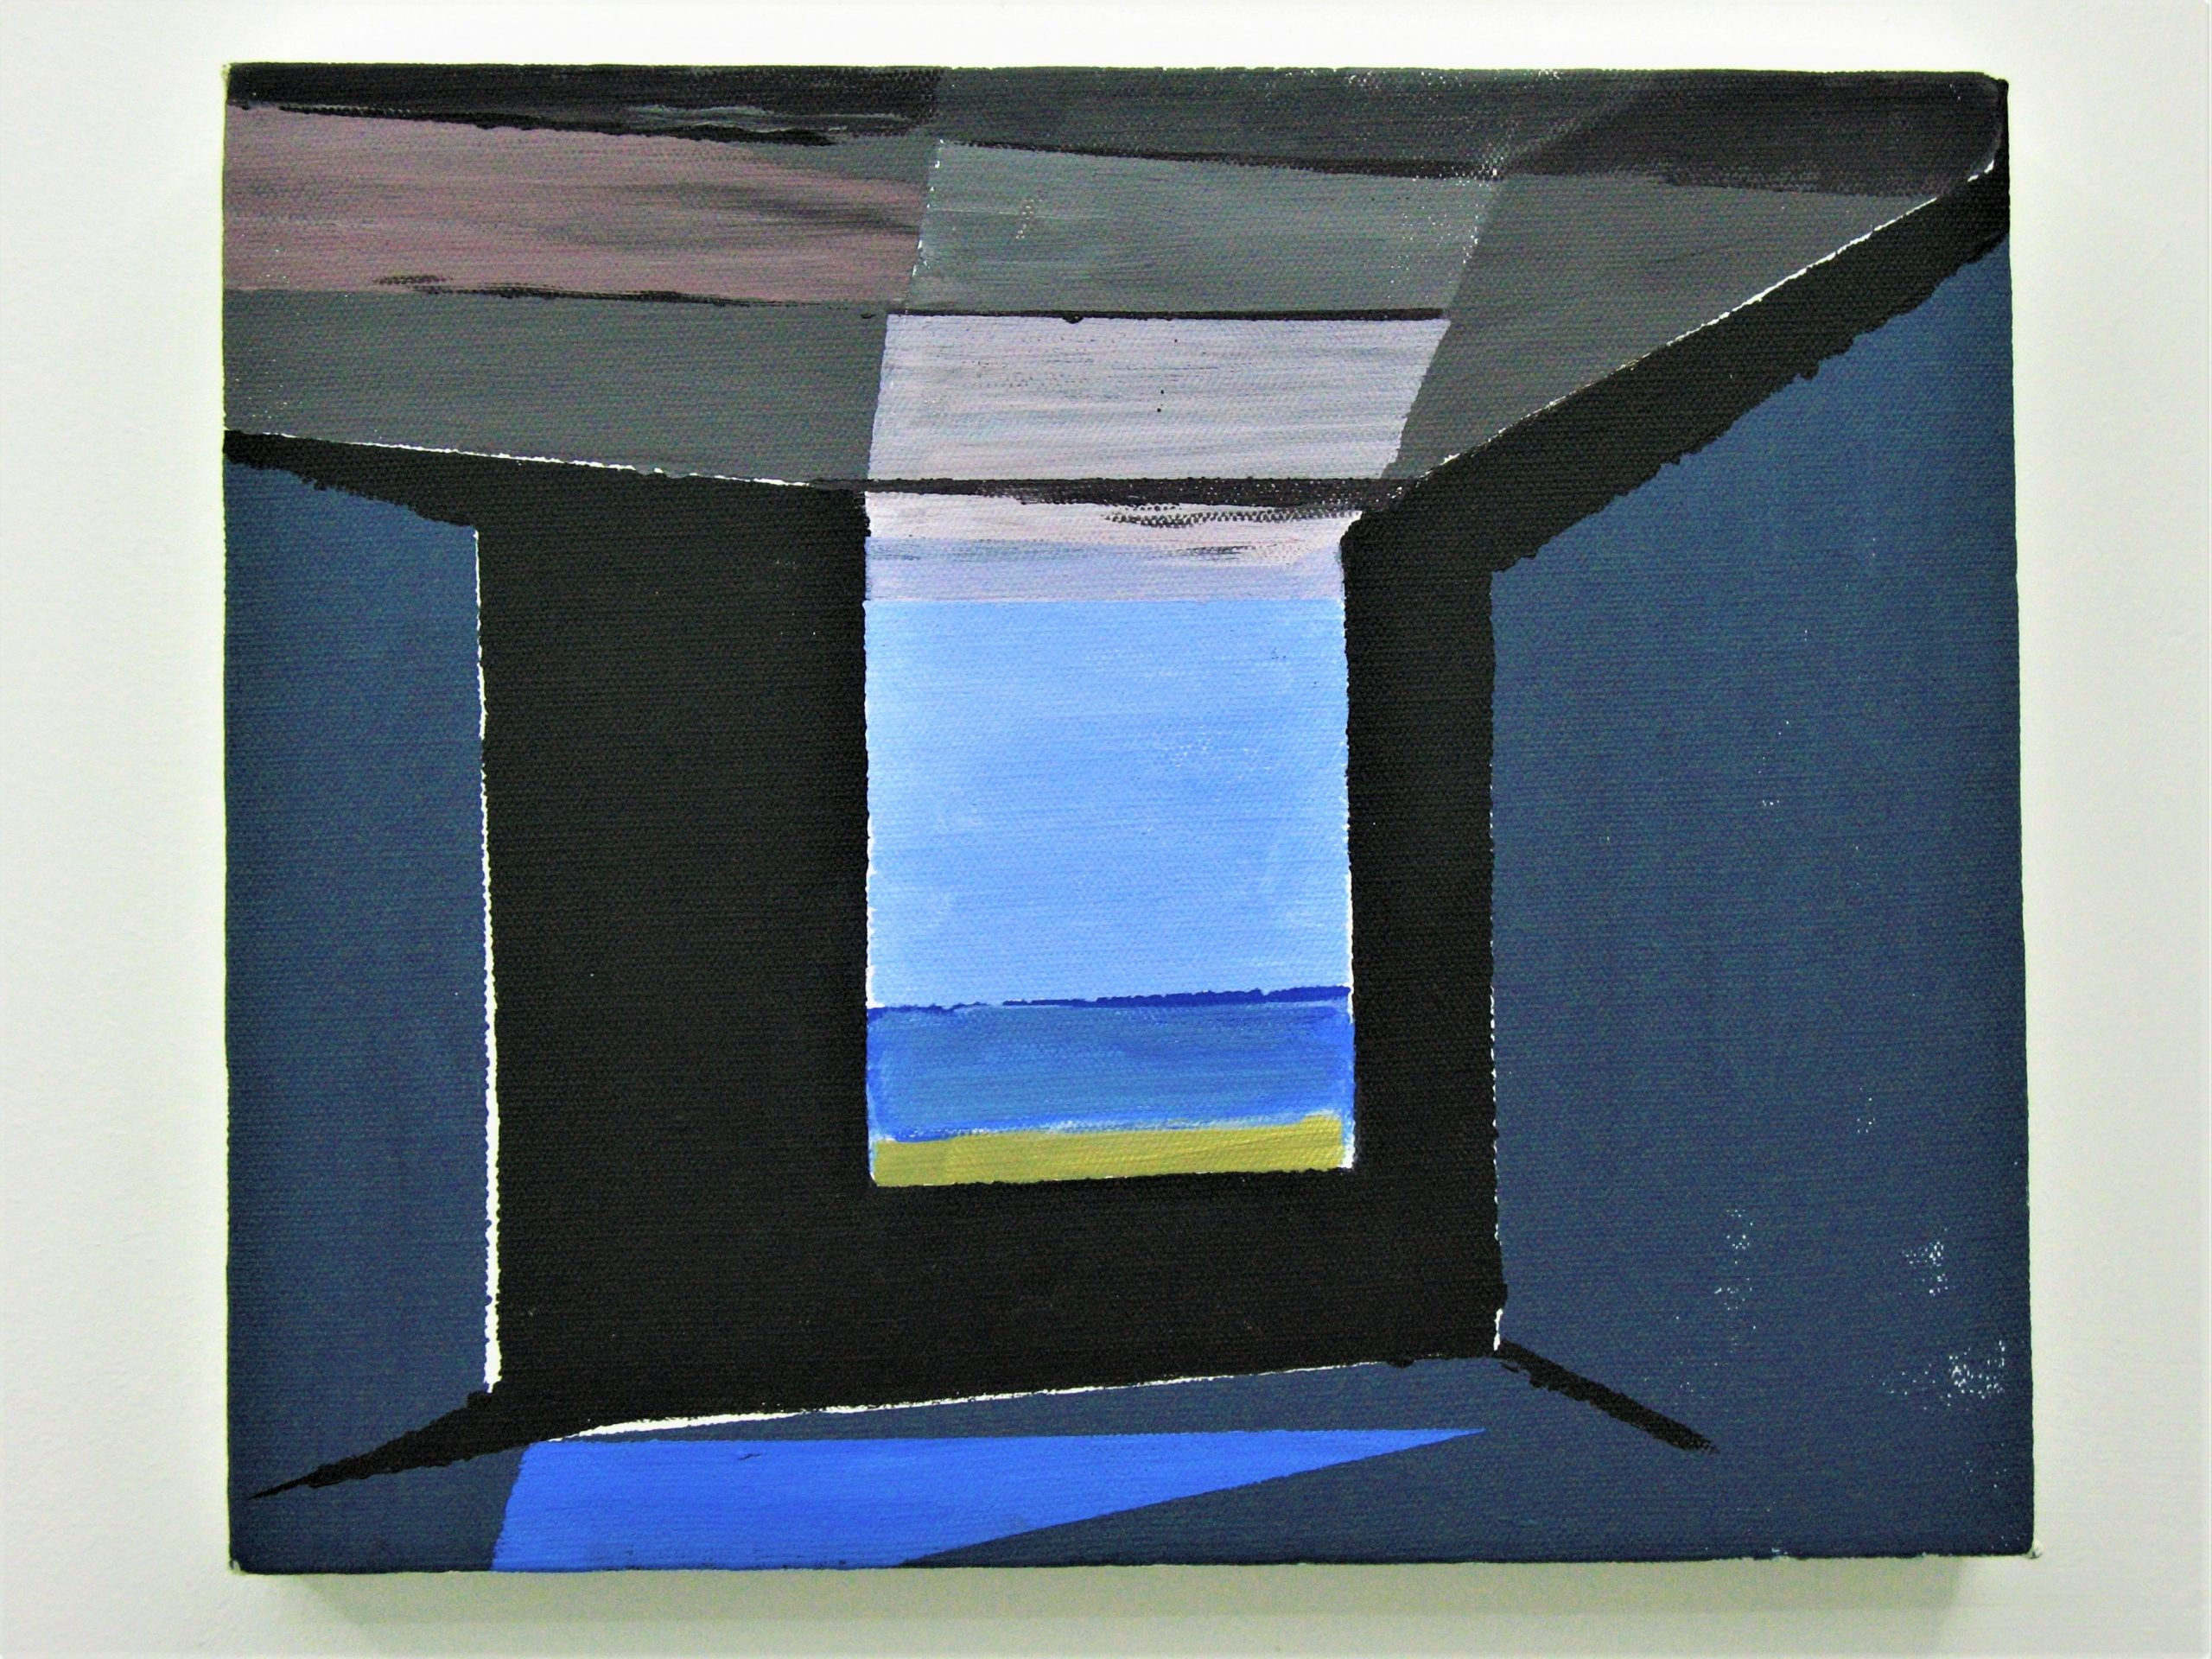 SEABUNKER INTERIOR WITH REFRACTED LIGHT II ACRYLIC ON CANVAS 2017